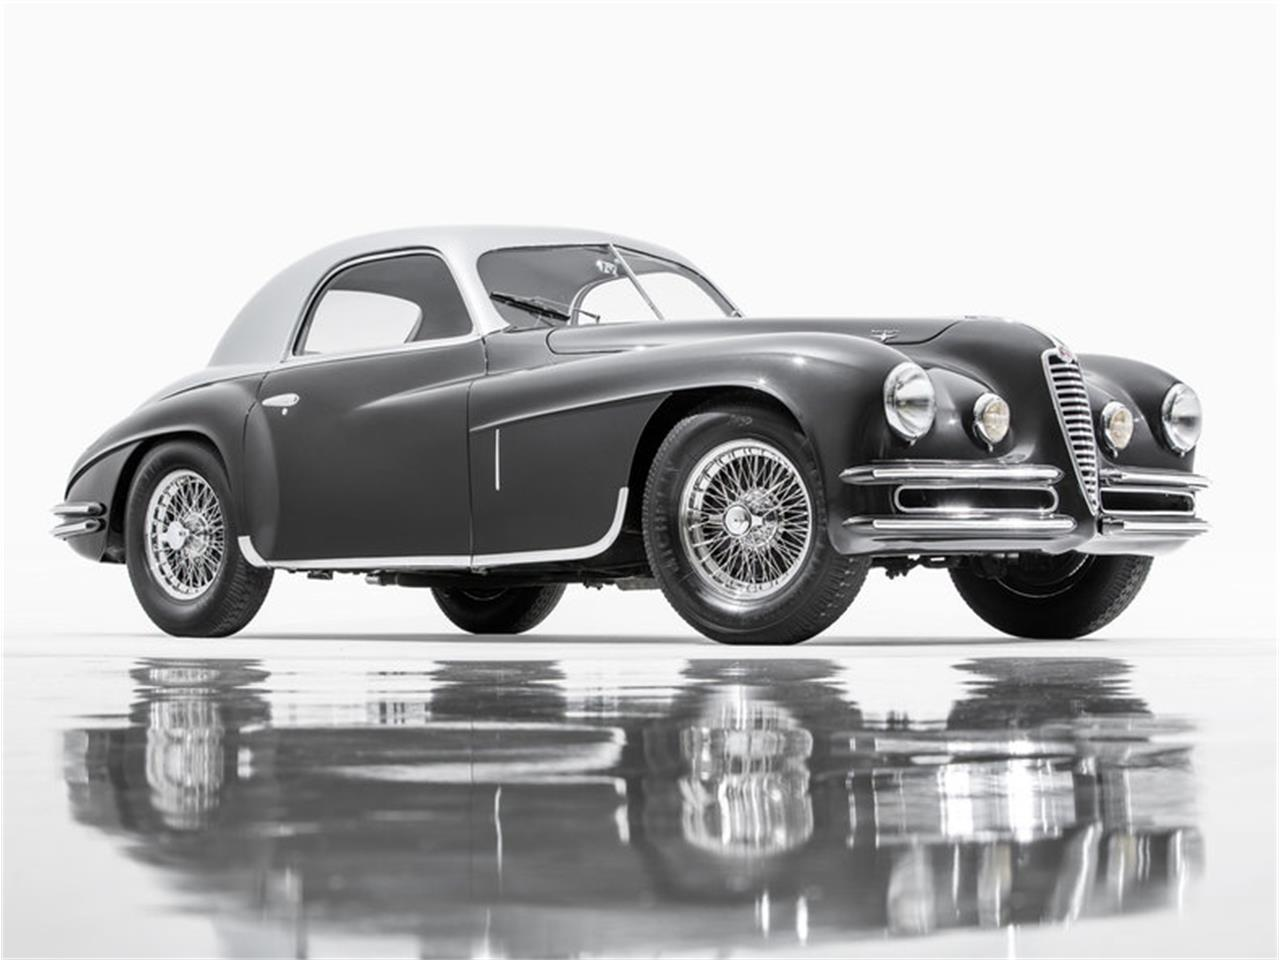 Large Picture of '49 Alfa Romeo 6C 2500 SSC located in California Auction Vehicle Offered by Morris and Welford - MZAQ